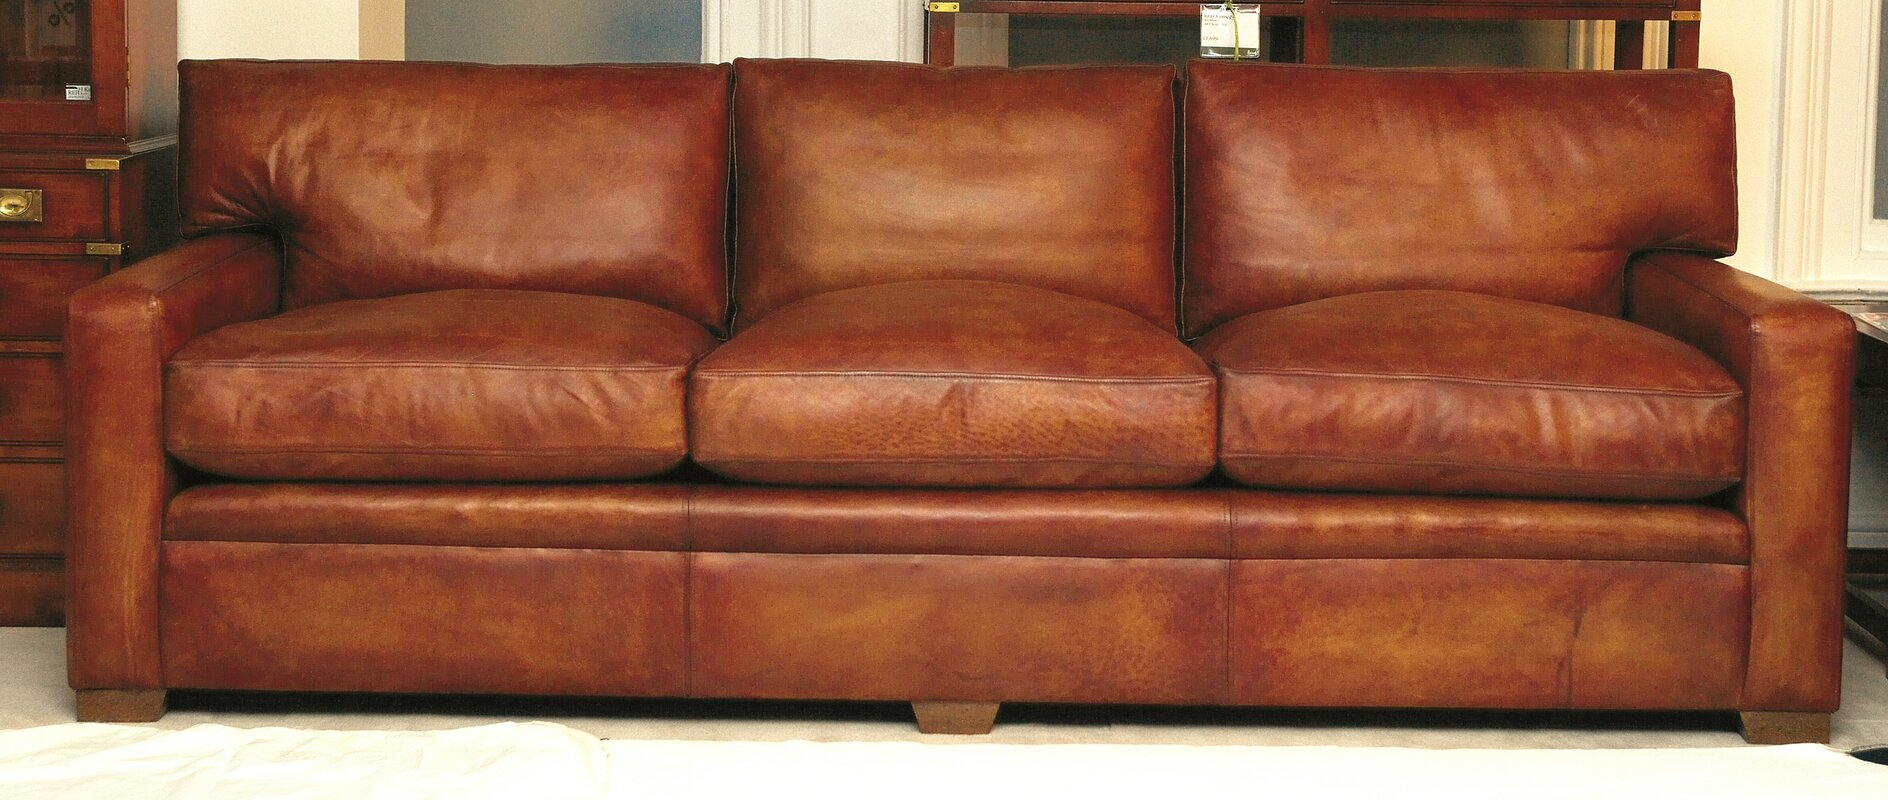 Leather Furniture Traveler Collection: Curzon Gallery Collection Armada Leather 4 Seater Sofa